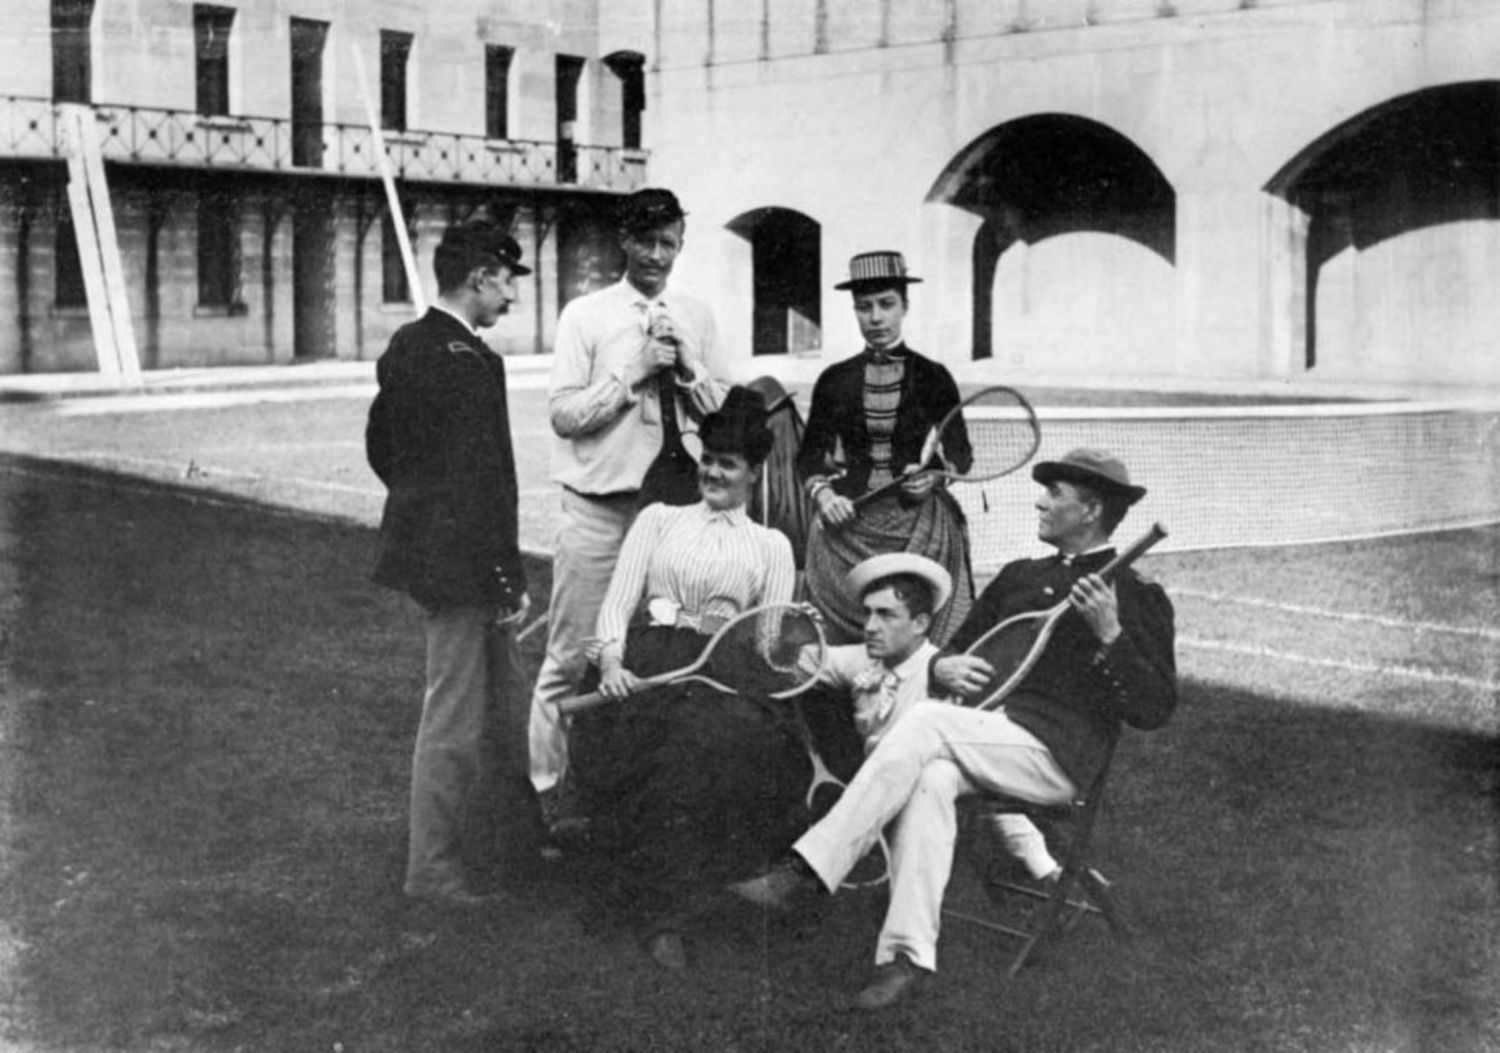 Photograph of Alice Austen's leisurely tennis game at Fort Wadsworth. Austen is standing third from the left.